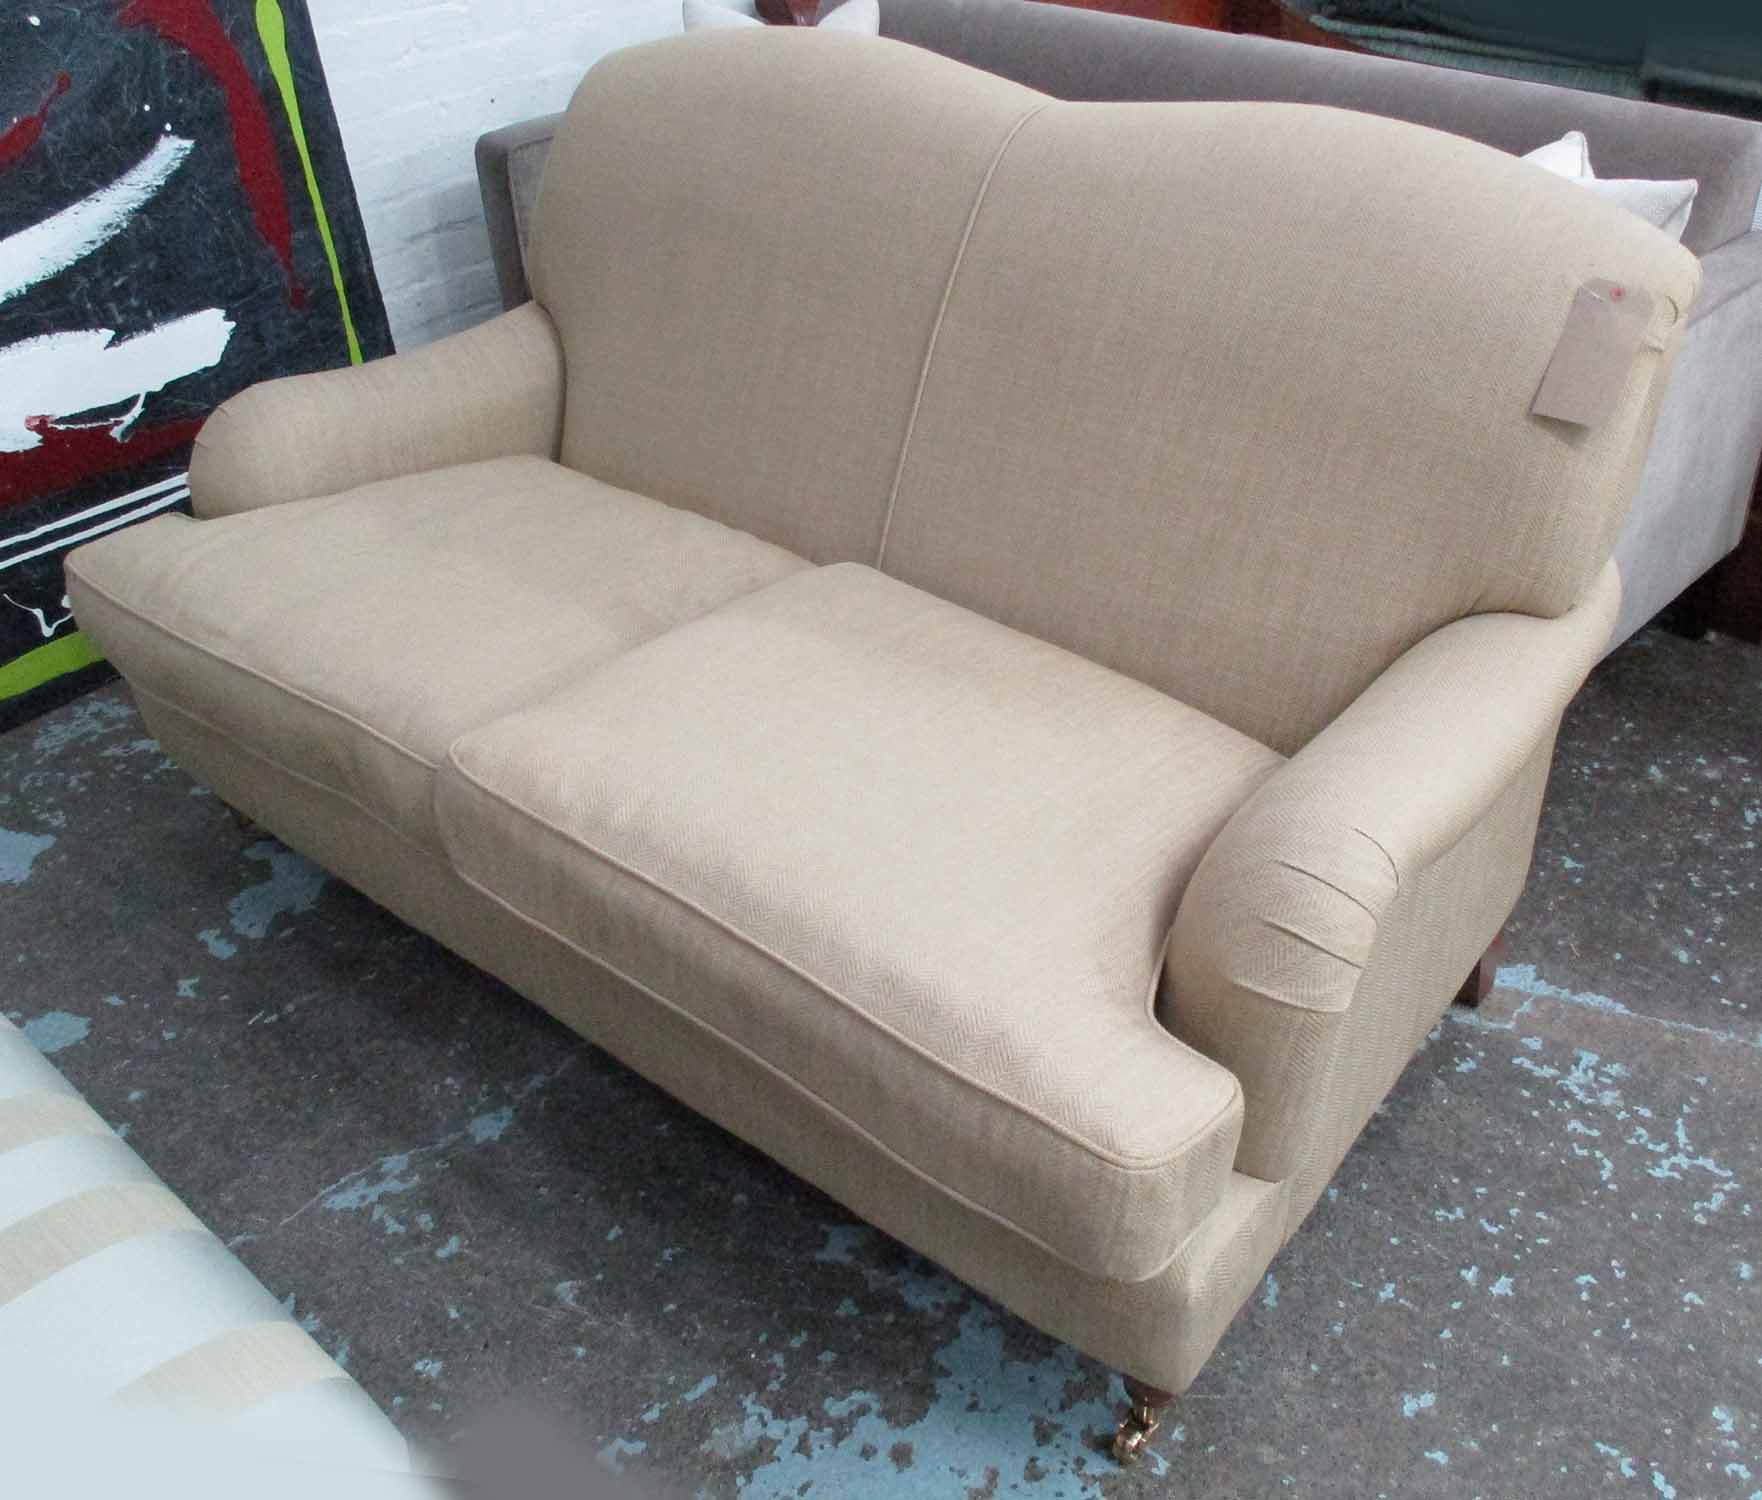 Lot 41 - LAURA ASHLEY SOFA, two seater, howard style, in brown herringbone fabric, on turned castor supports,